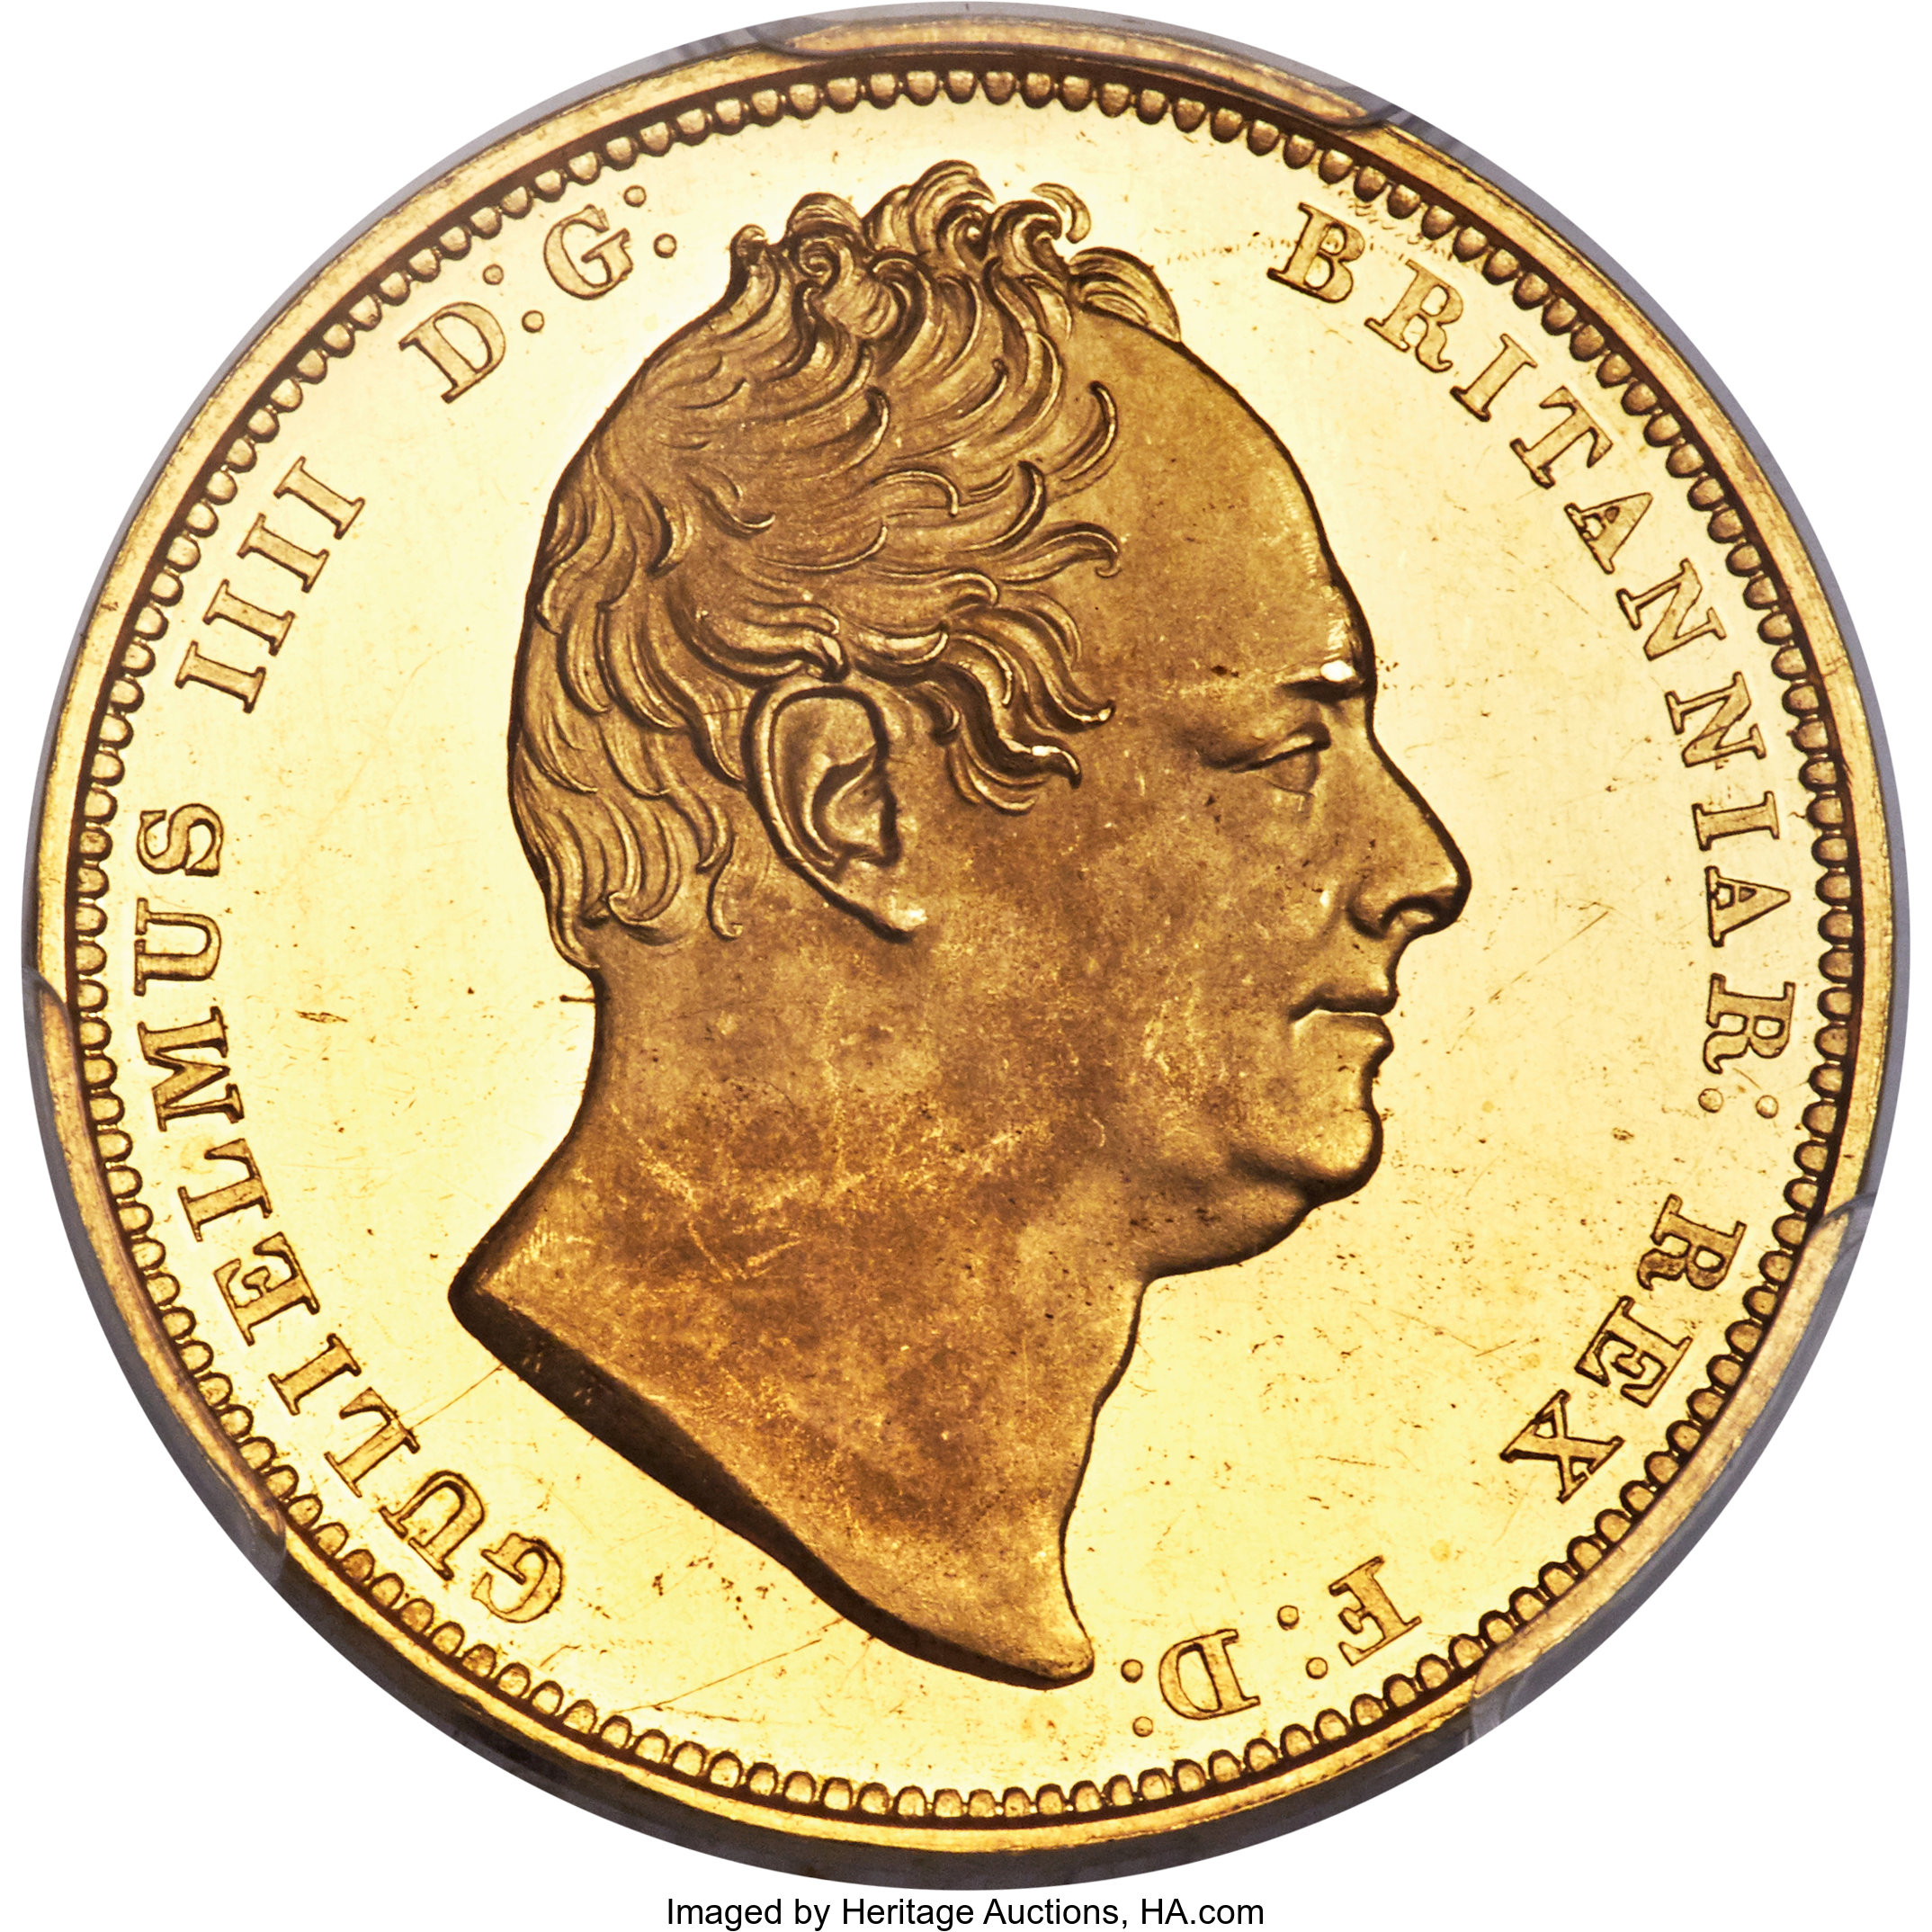 Great Britain William Iv Gold Proof 2 Pounds 1831 Pr64 Deep Cameo Lot 34235 Heritage Auctions